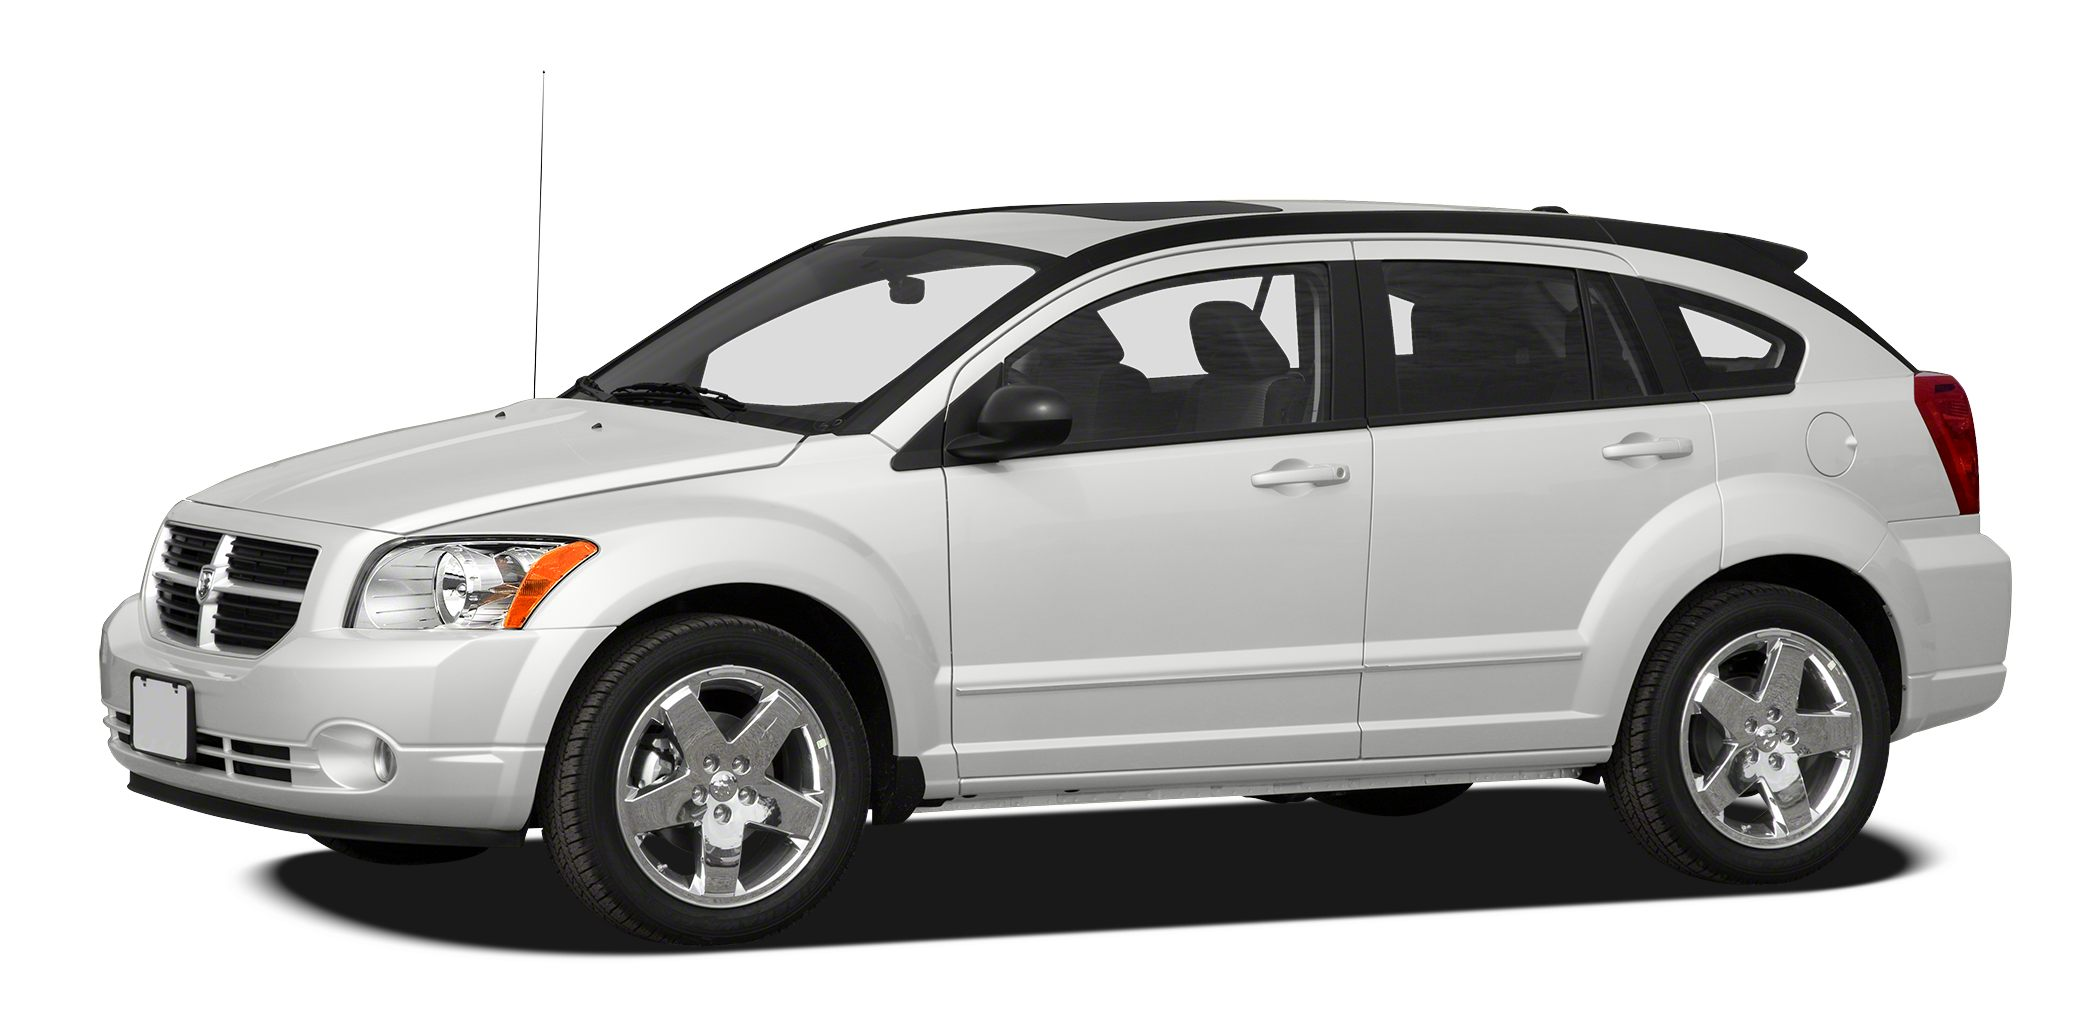 2011 Dodge Caliber Uptown GREAT MILES 52167 Uptown trim PRICED TO MOVE 1900 below Kelley Blue